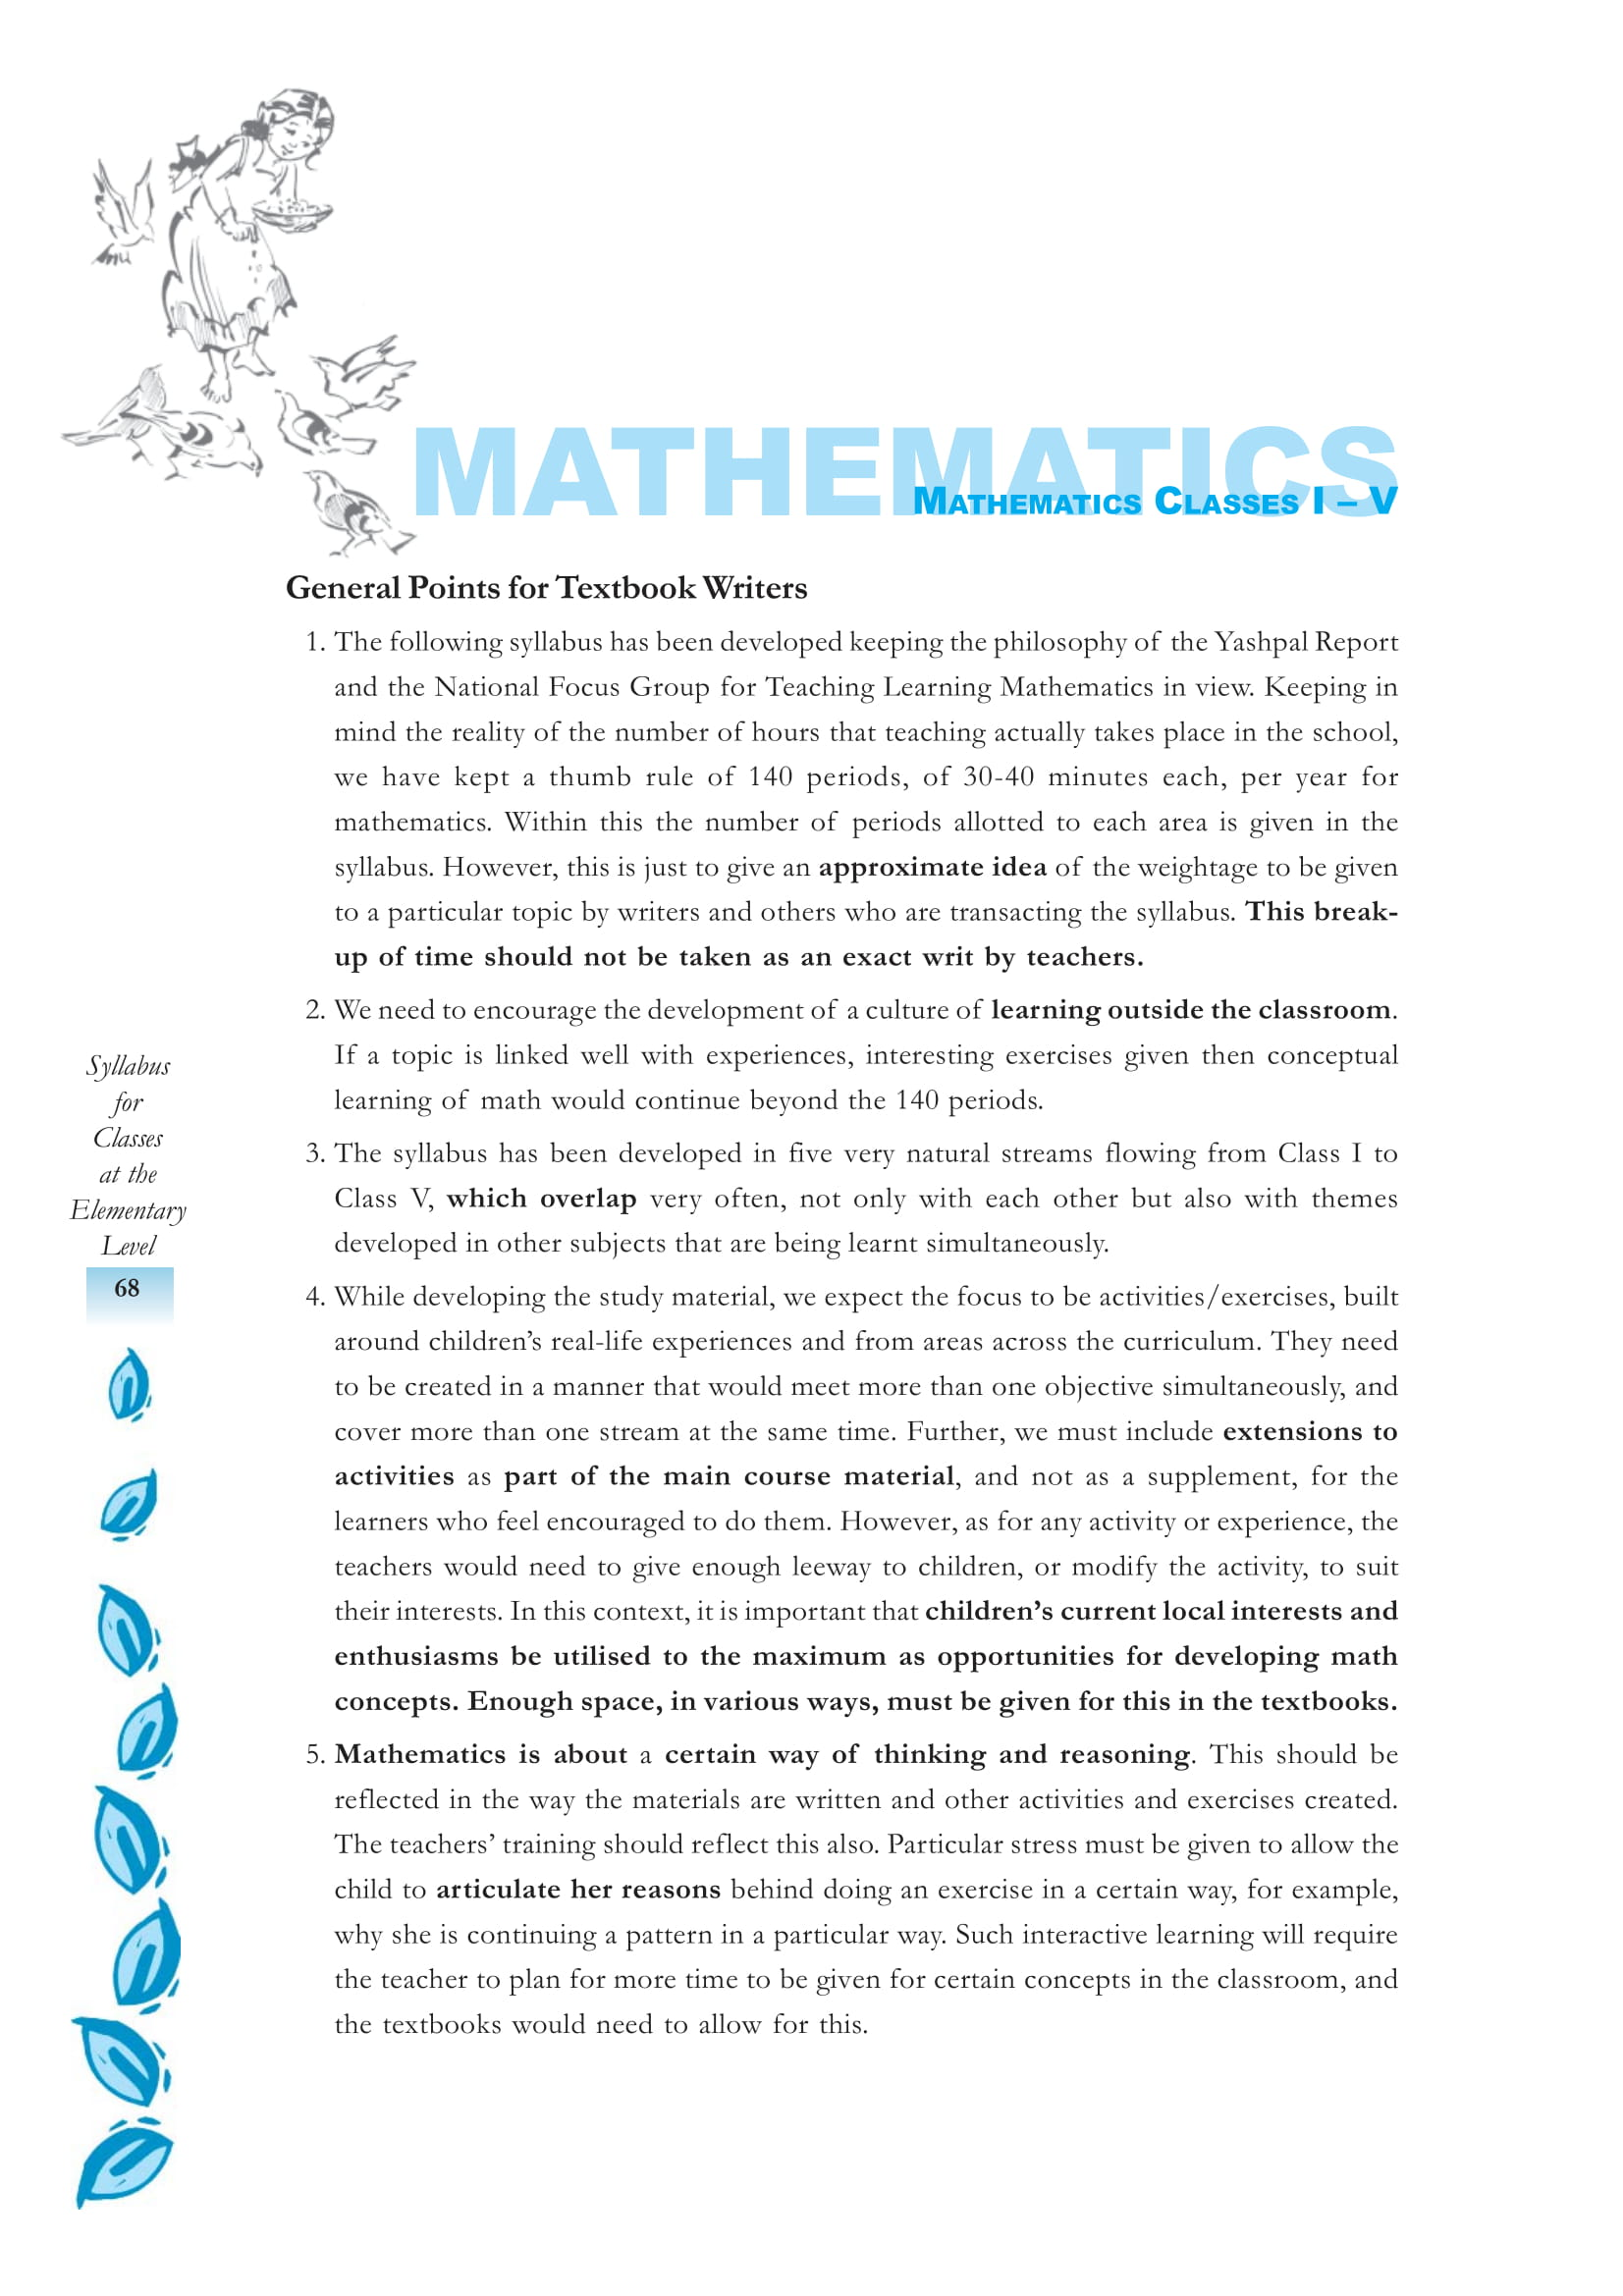 CBSE Syllabus For Maths Classes 1, 2, 3, 4, 5 – New NCERT Pattern at Elementary Level